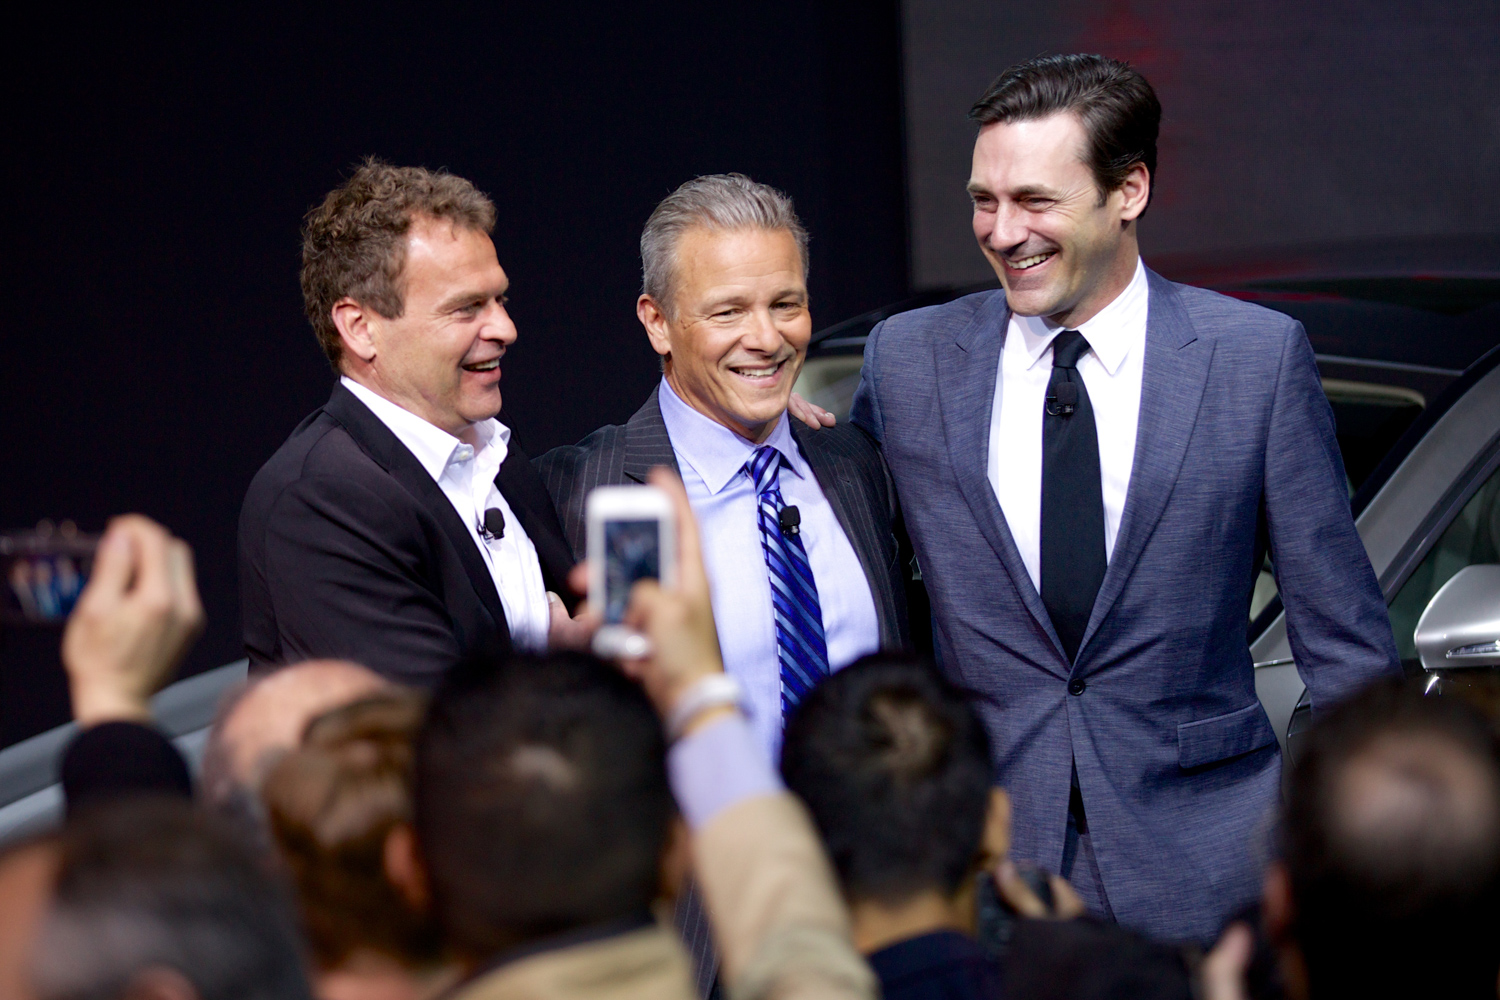 Tobias Moers, CEO & Chairman, AMG; Steve Cannon, President & CEO, MBUSA and Jon Hamm, Mad Men Star at the world premiere of the 2014 S63 AMG Coupe.